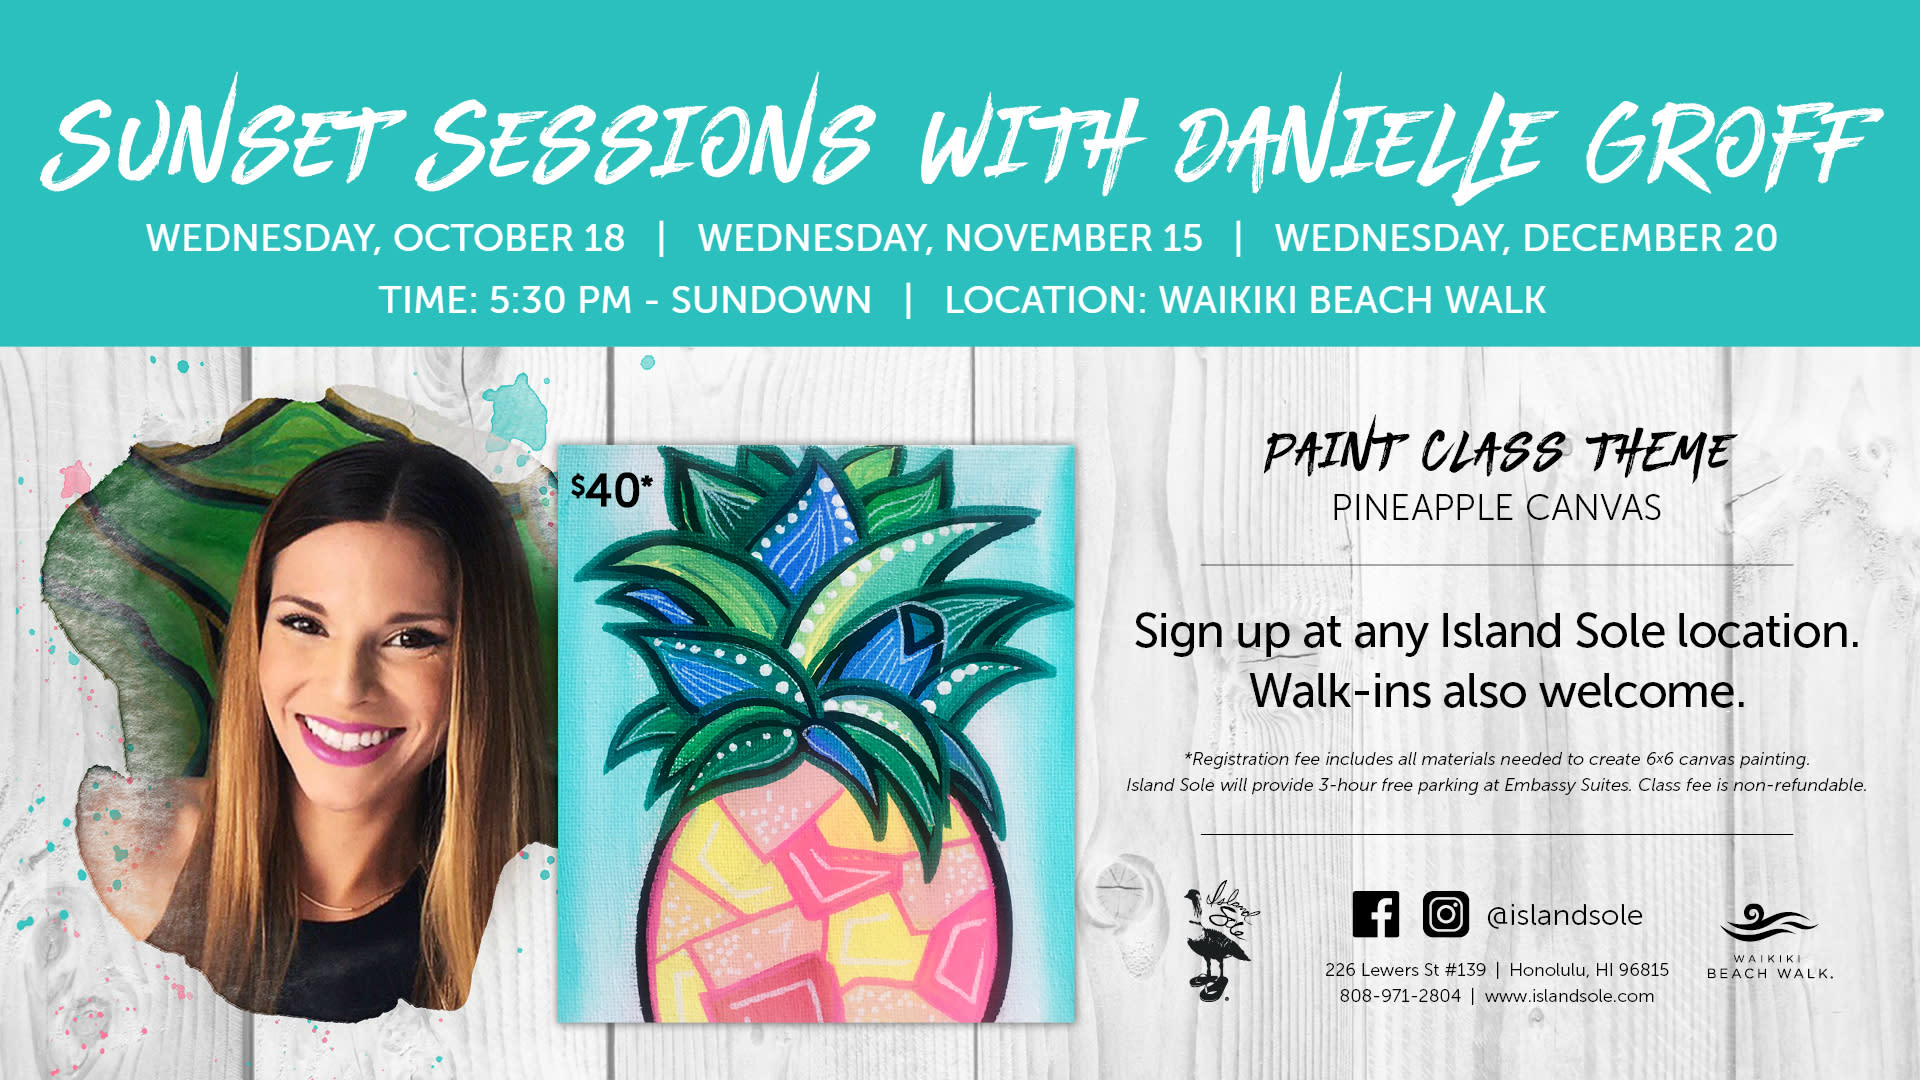 <div class='title'>           Sunset Sessions with Danielle Groff - Waikiki Beach Walk         </div>                 <div class='description'>           Sunset paint classes with local artist Danielle Groff. Hosted by Island Sole on the Waikiki Beach Walk lawn, every 3rd Wednesday of the month.         </div>